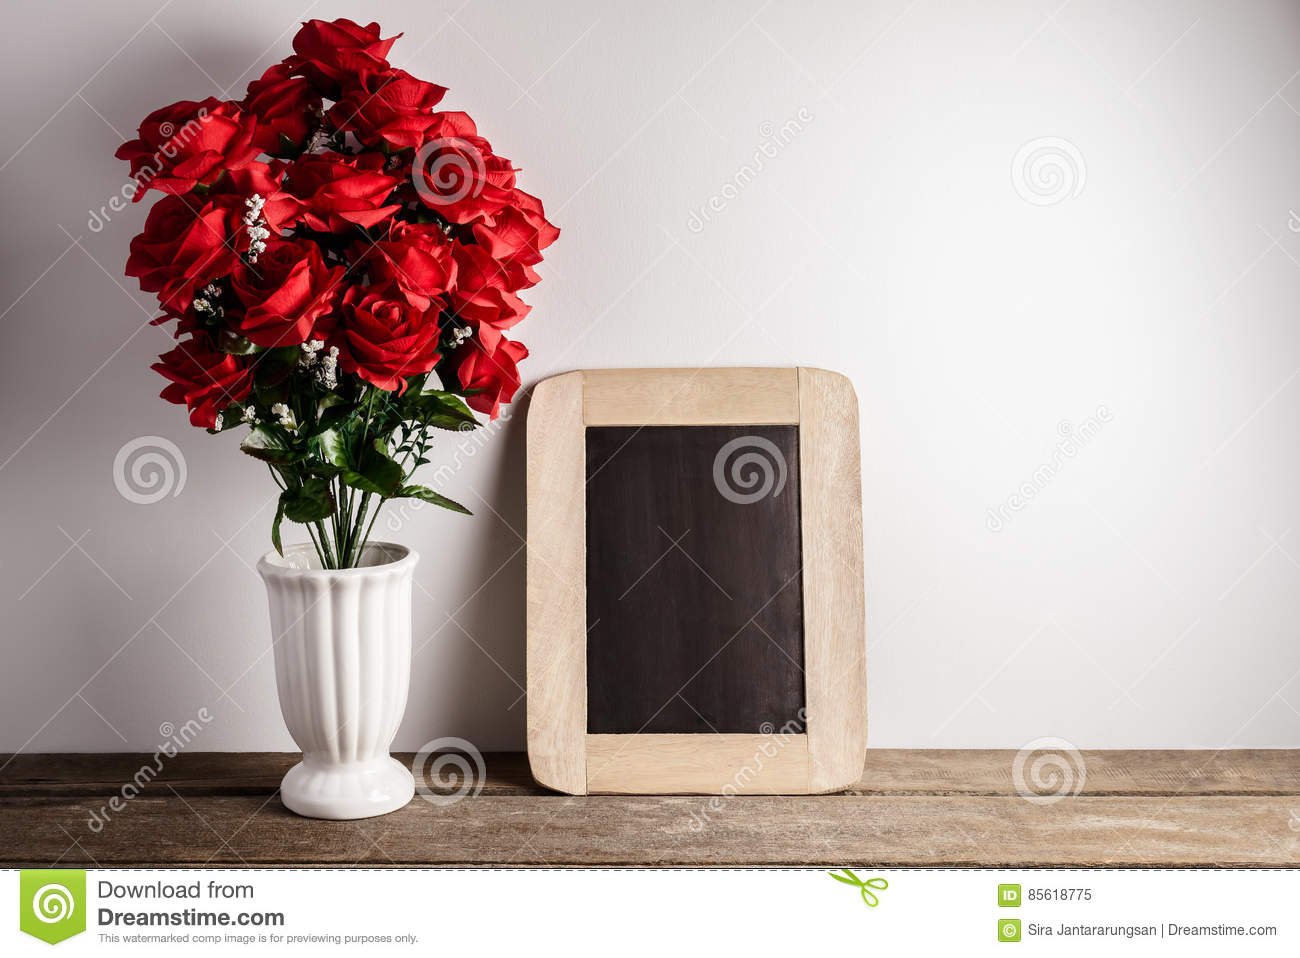 Valentines Day Greeting Card Red Rose Flowers And Chalkboard On